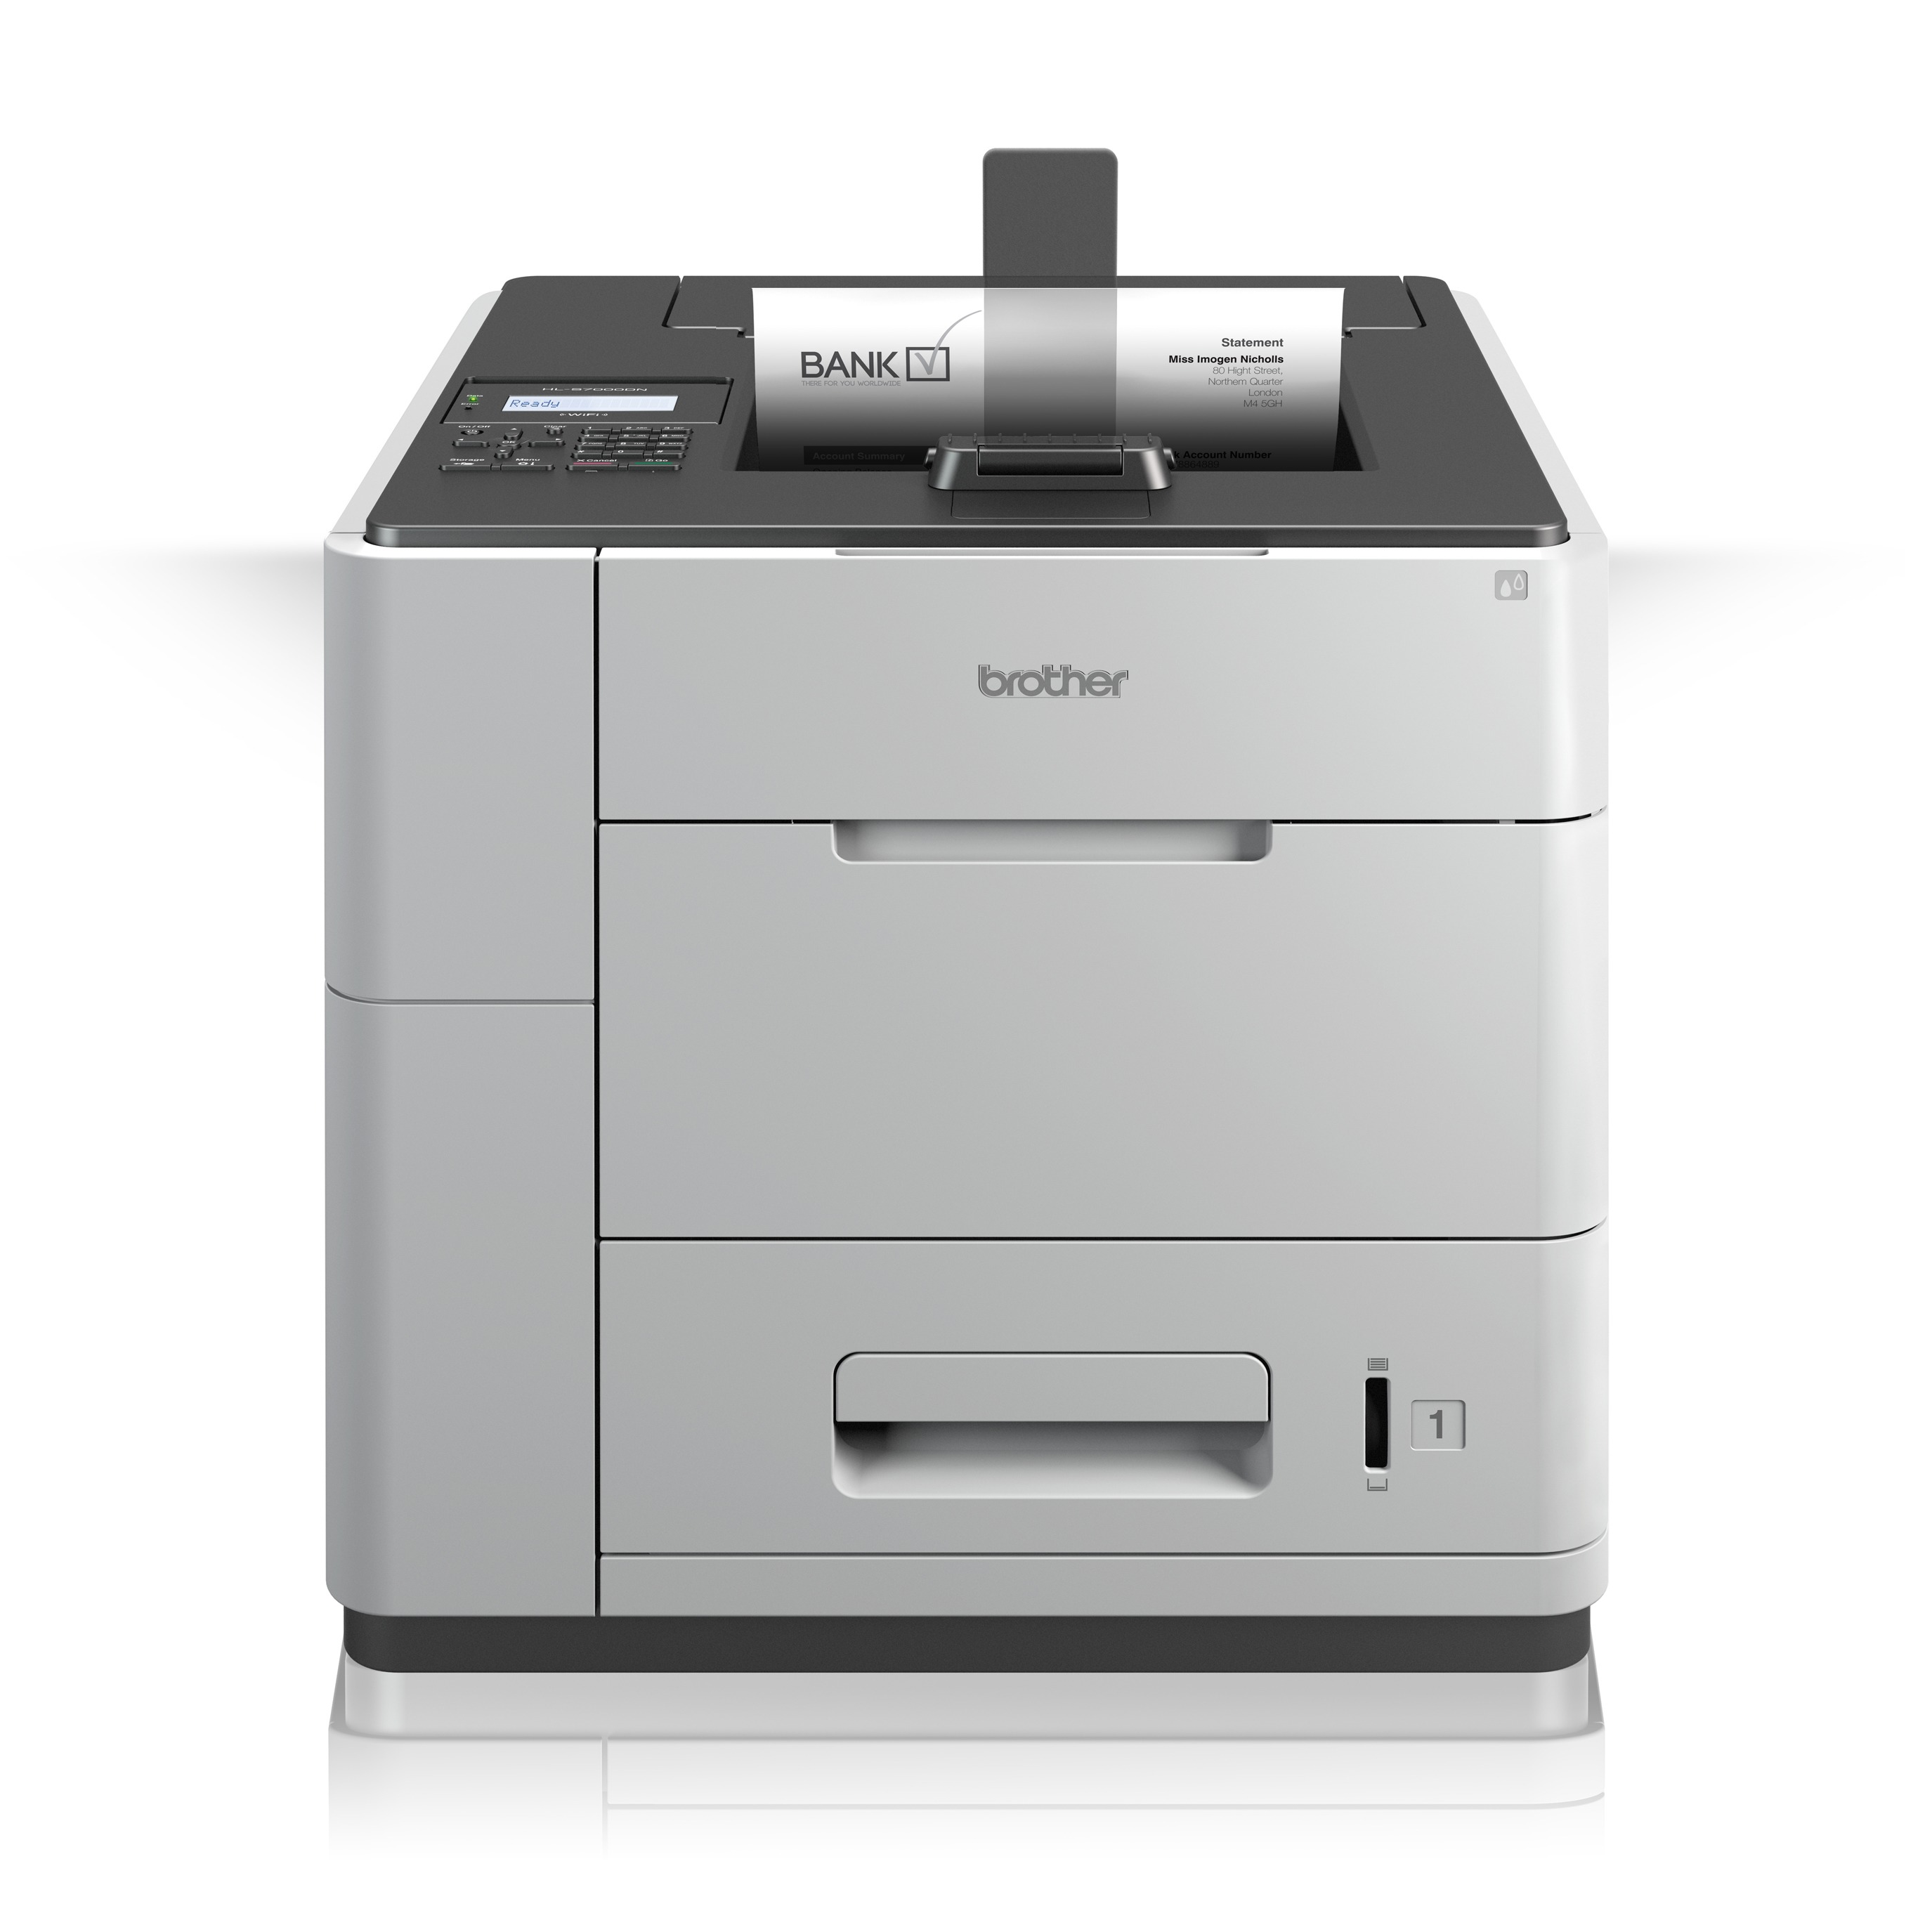 Op Perfect Plasma is alles over computer te vinden: waaronder expert en specifiek Brother laser printer HL-S7000DN